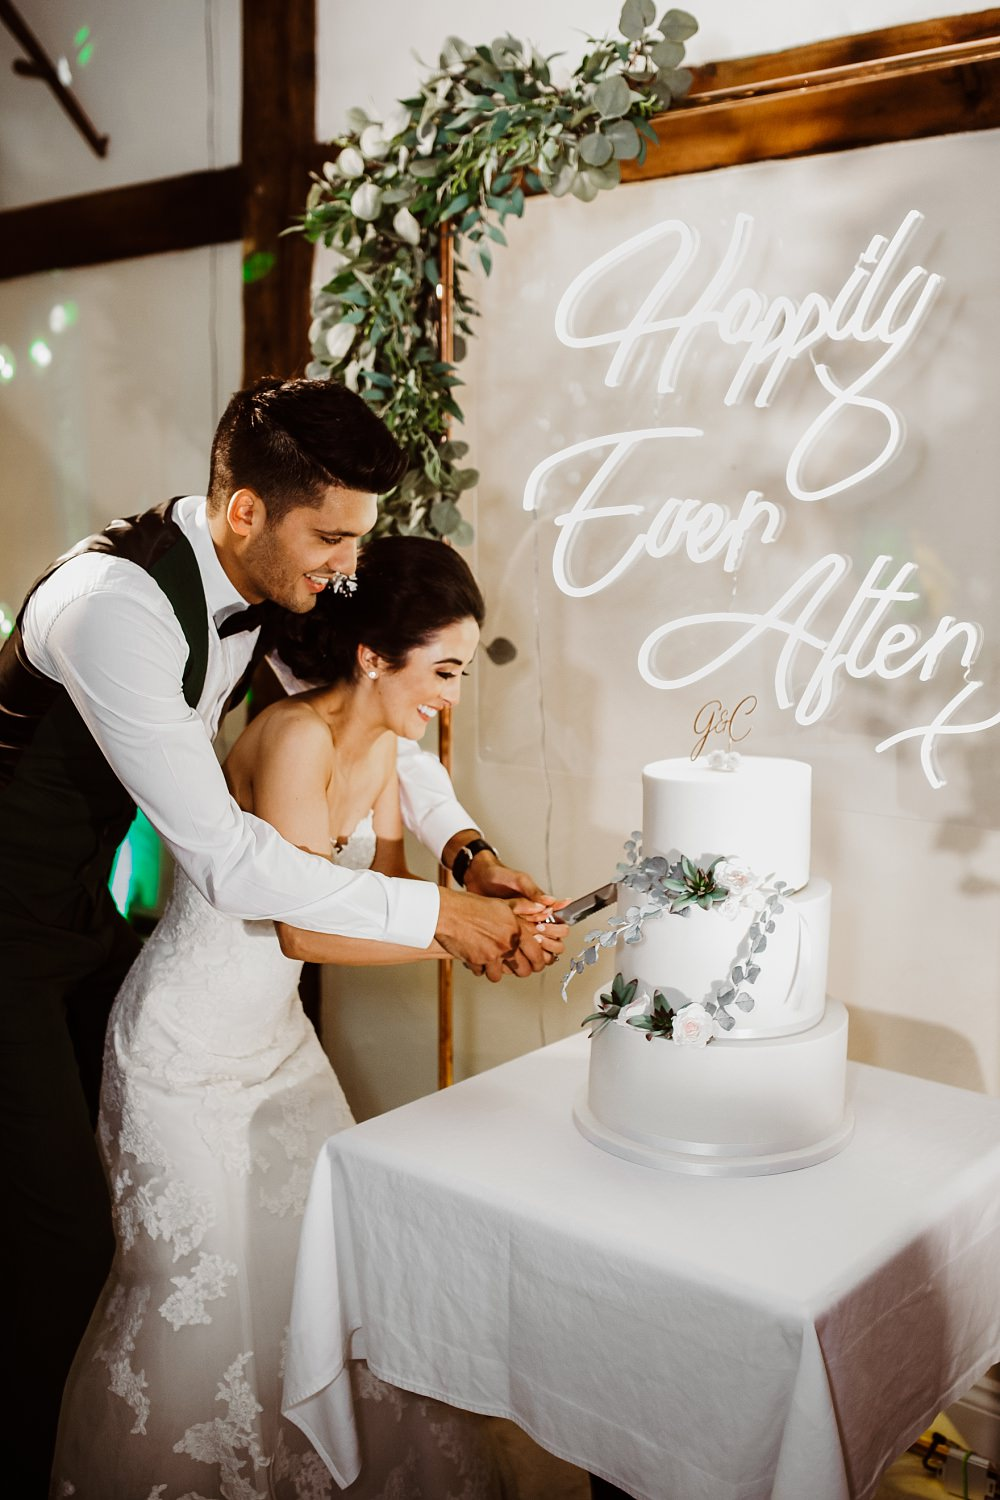 Cake Table Neon Sign Signs Signage Clear Perspex Acrylic Greenery Greek English Wedding Holly Collings Photography